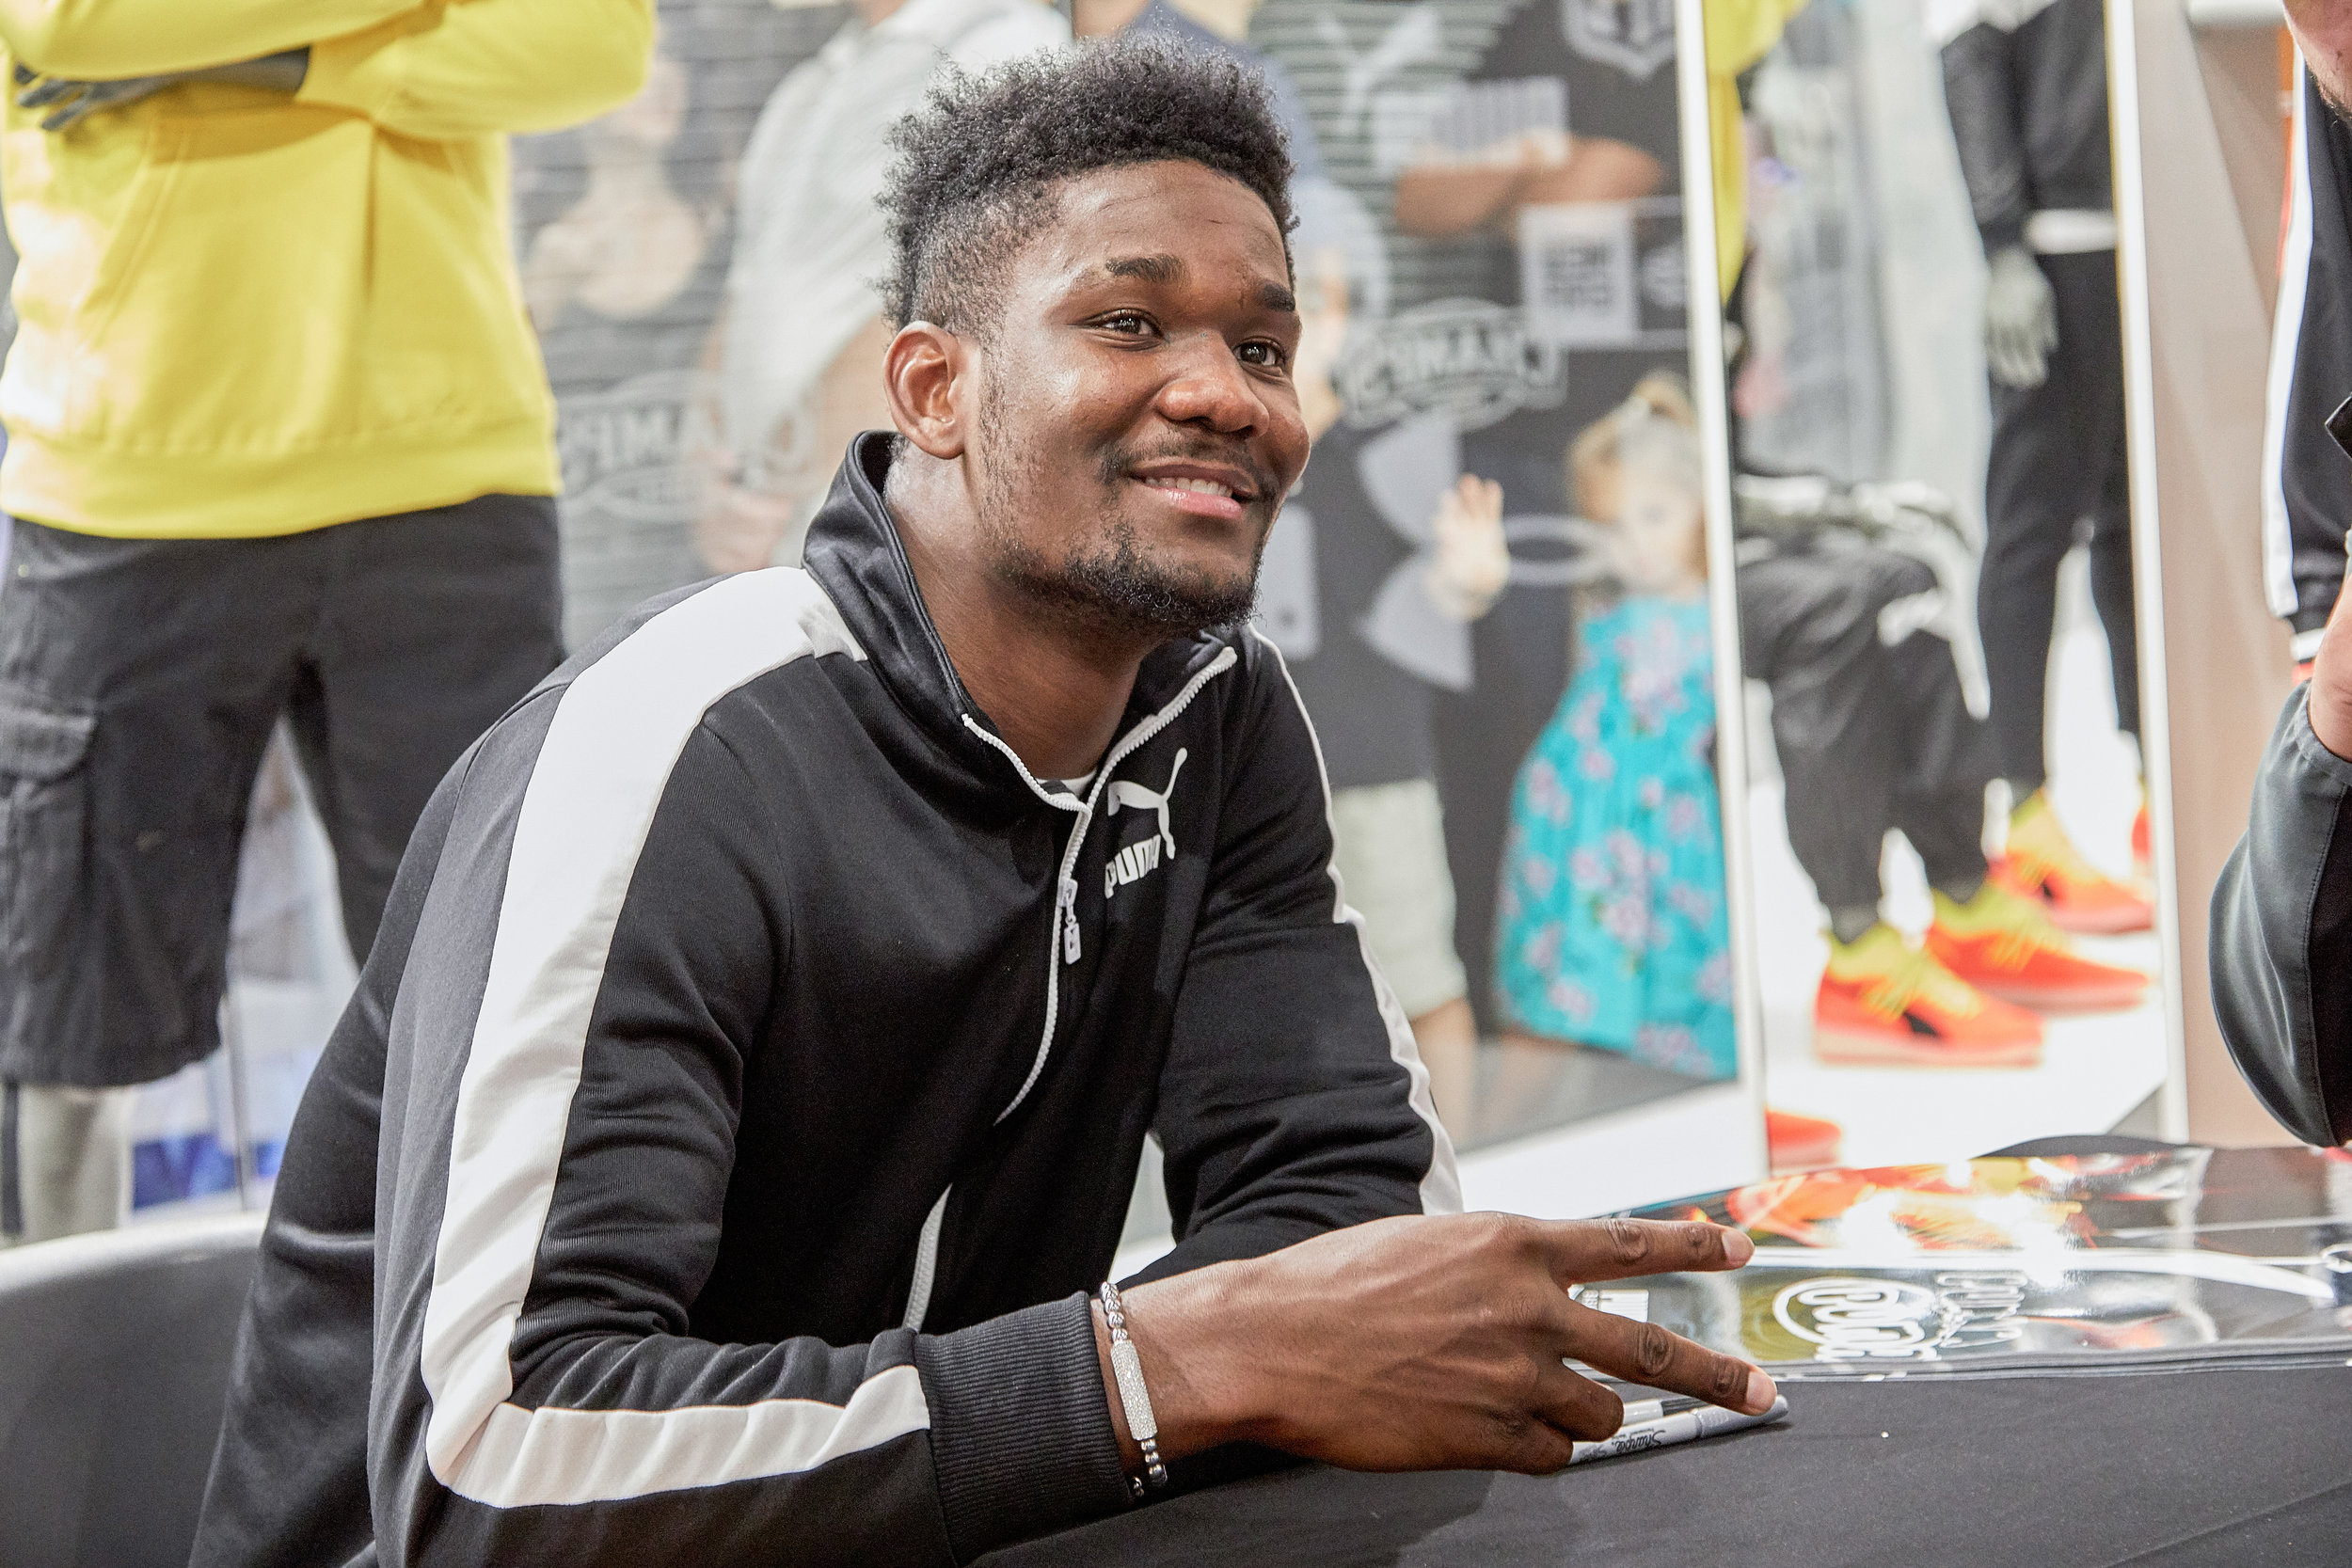 O Hello Media-Puma-Deandre Ayton-Champs-Top Selects-00343.jpg